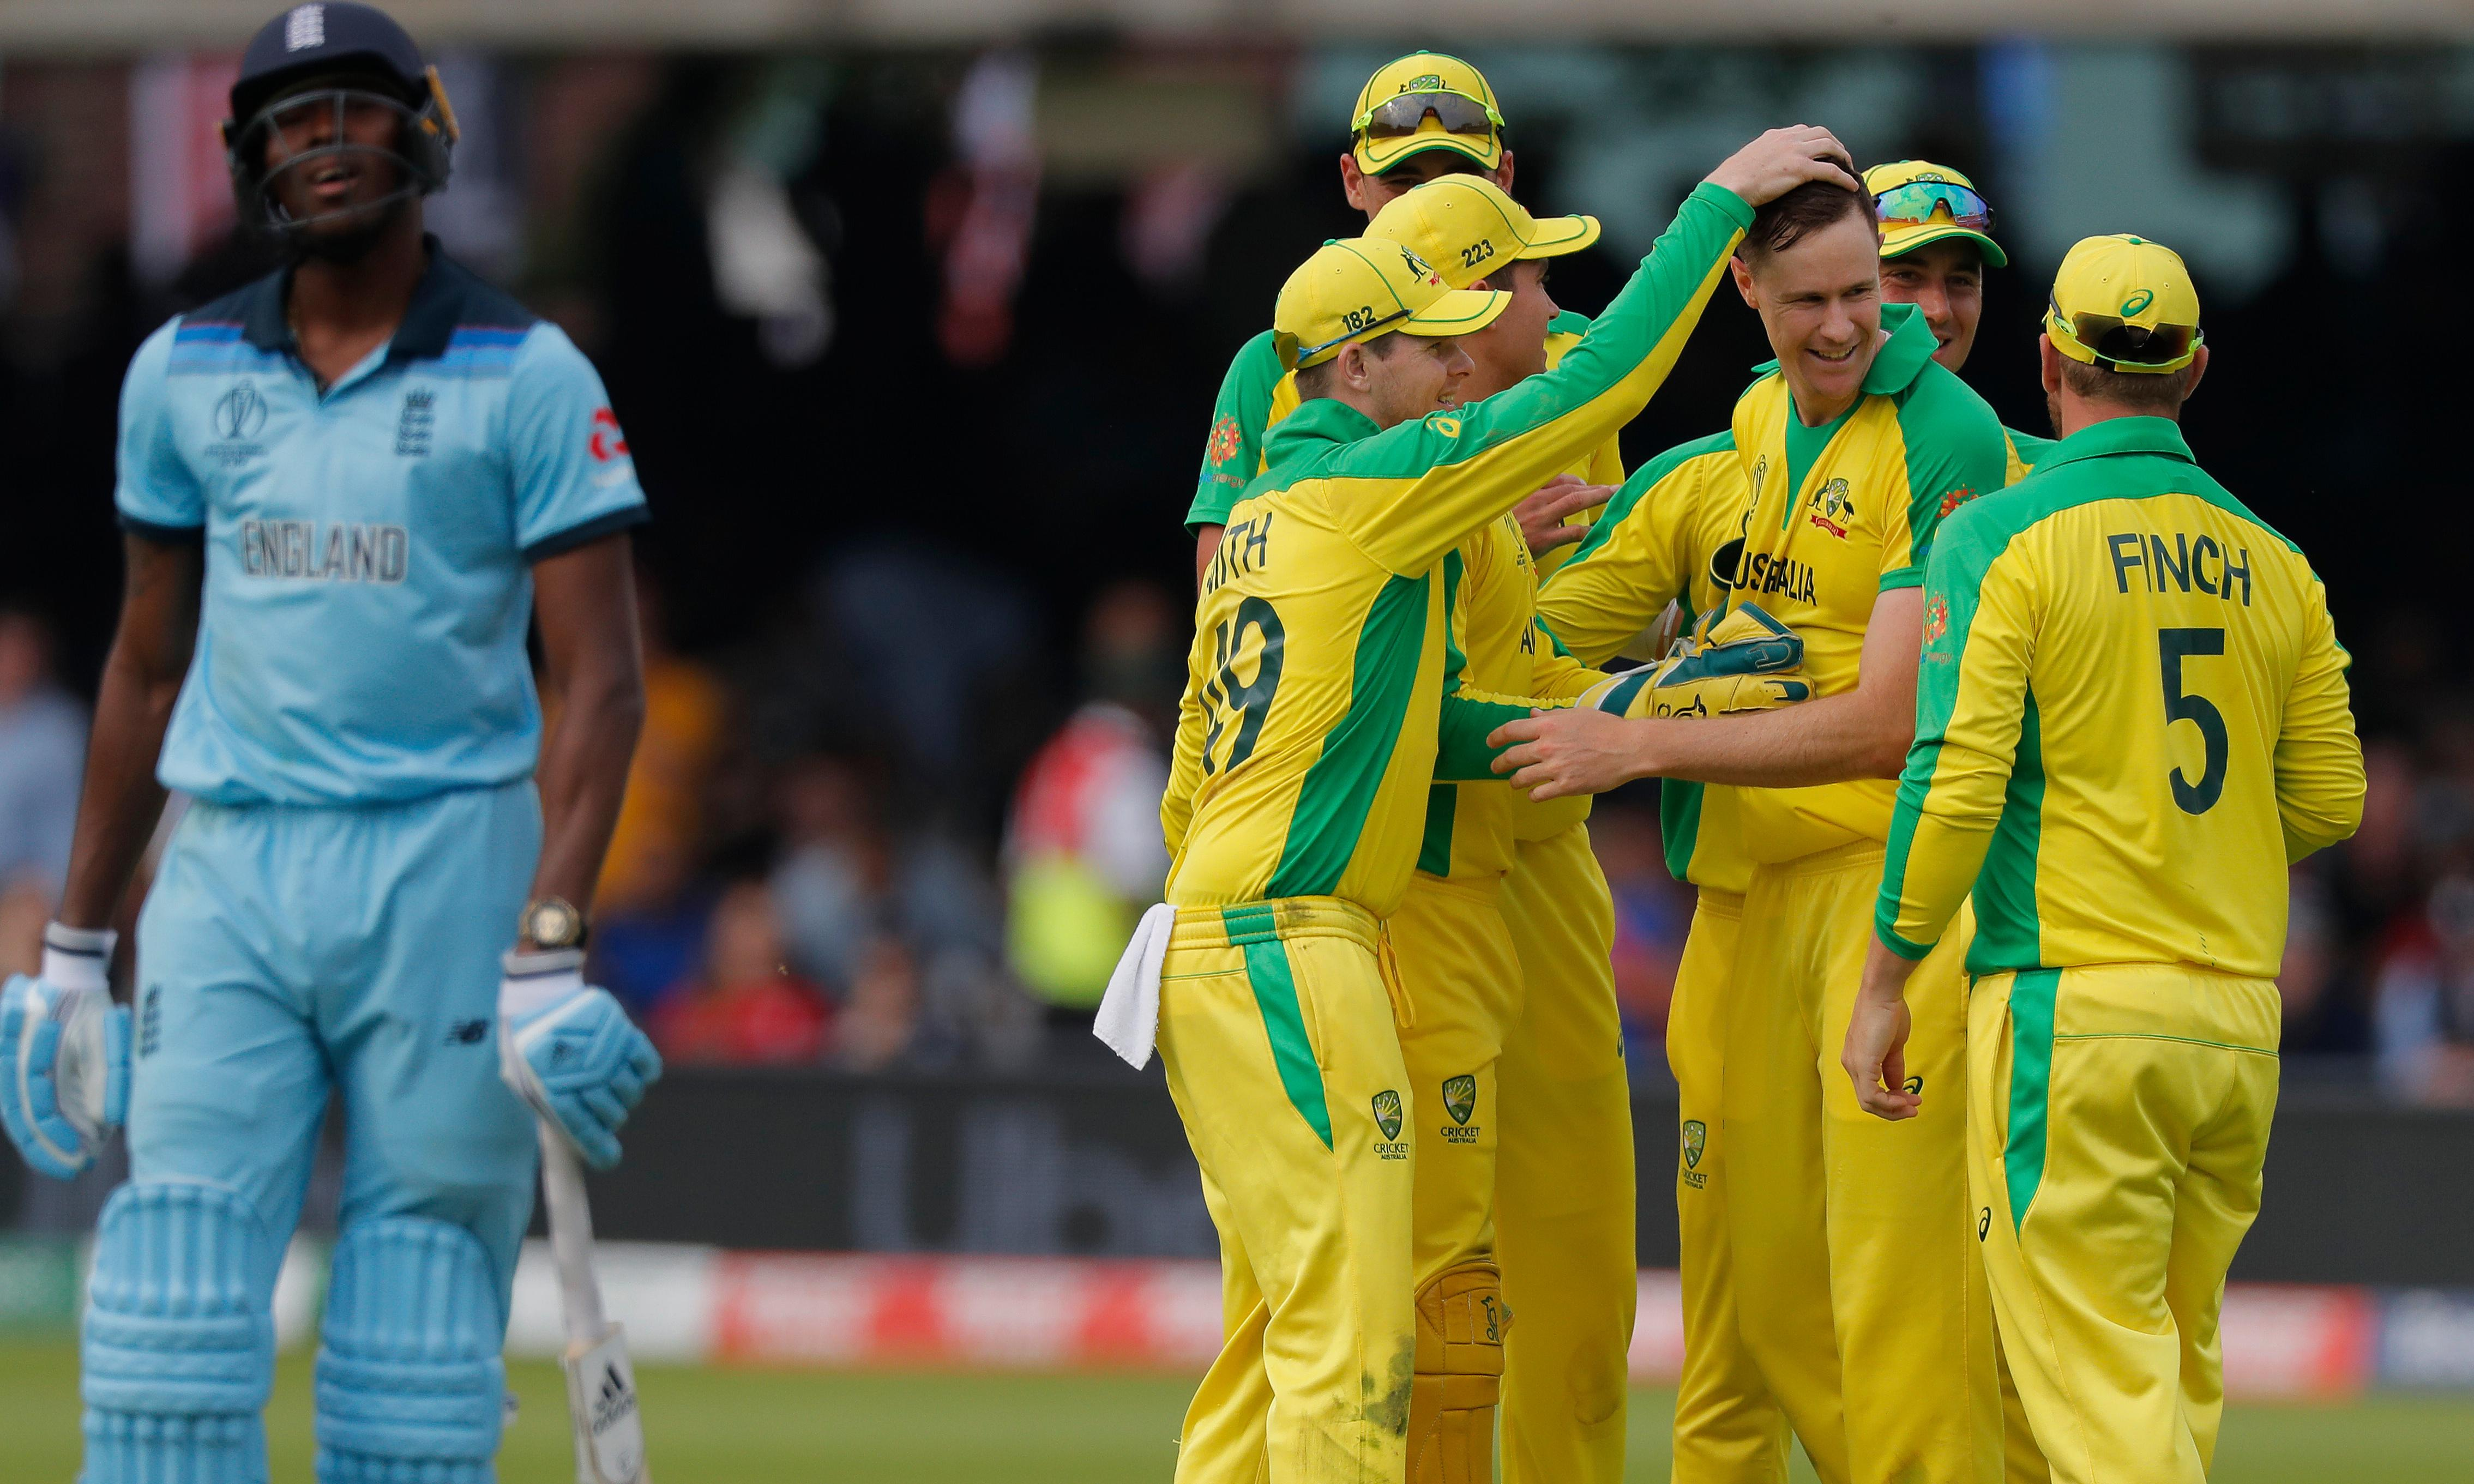 Australia's hastily assembled chimera leaves England vulnerable to exit